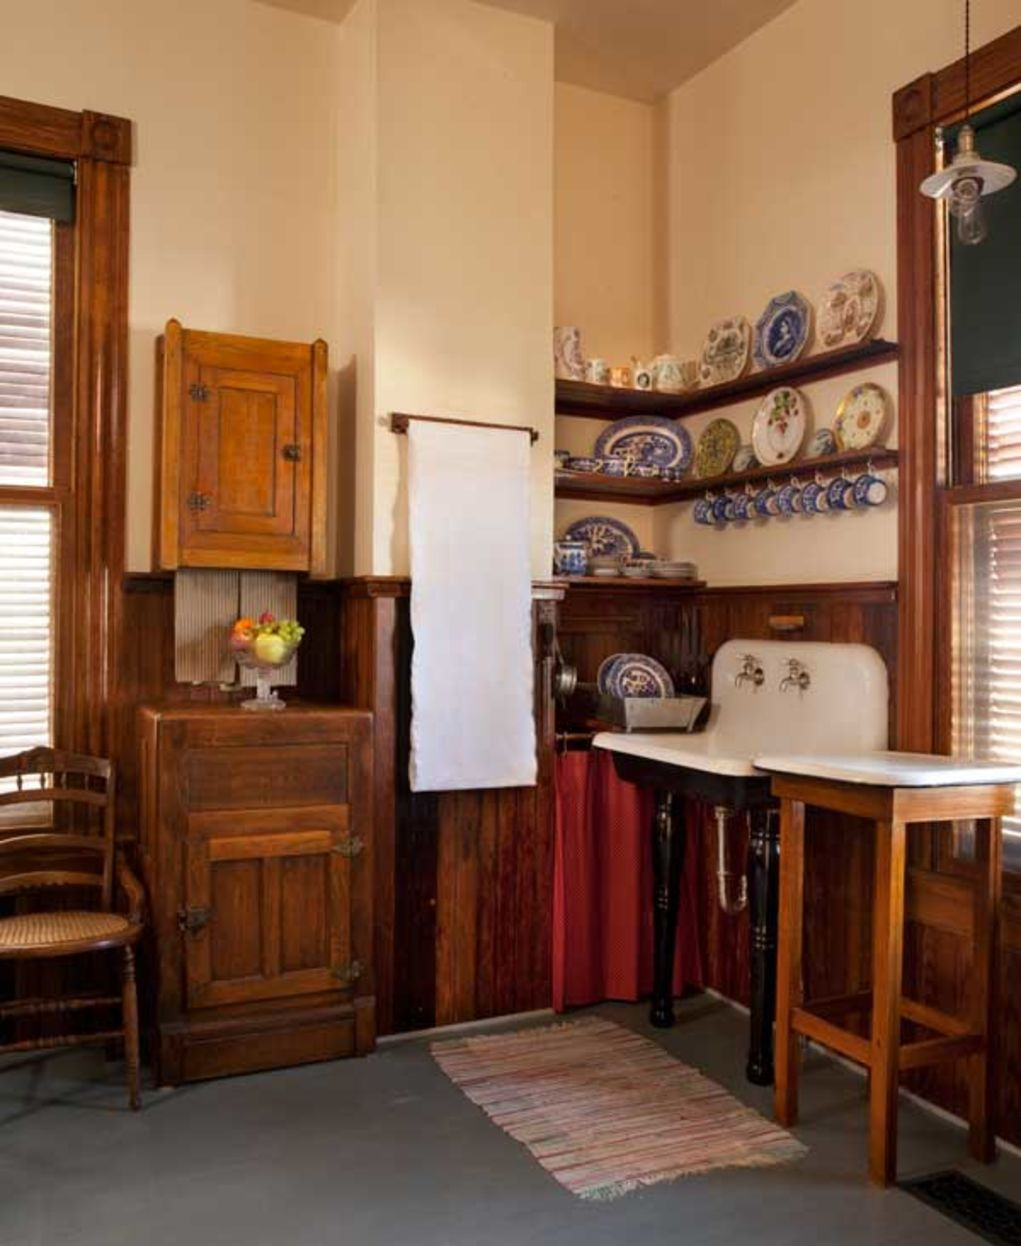 Victorian Kitchen: An Authentic Victorian Kitchen Design